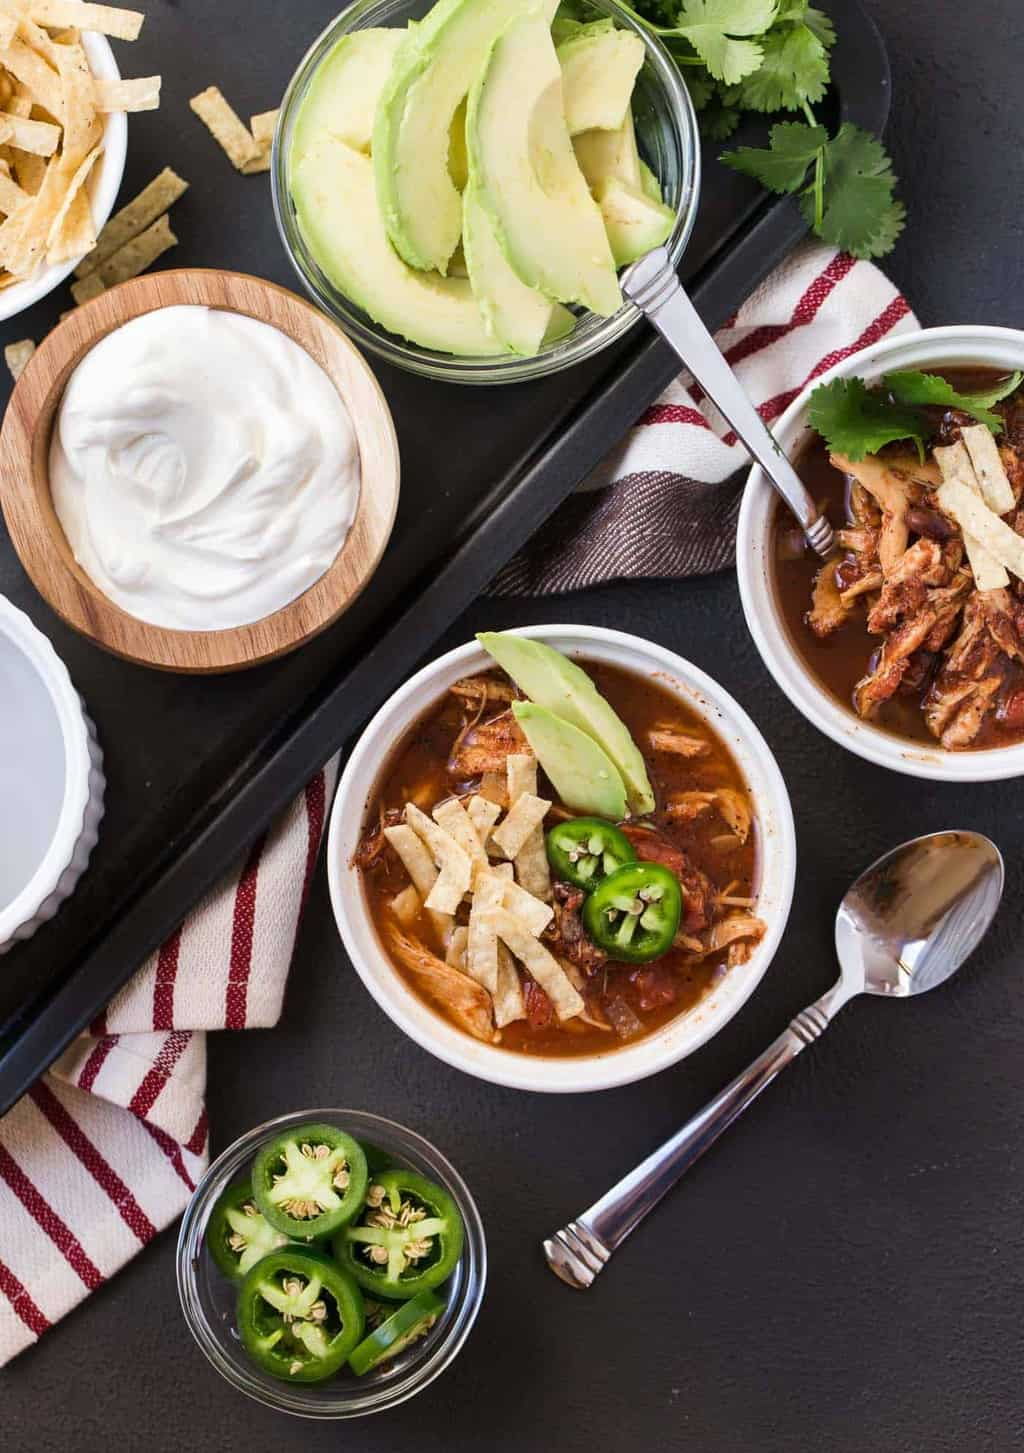 Two bowls of Slow Cooker Chicken Tortilla Soup topped with fresh cilantro, jalapeno slices, sour cream, avocado and tortilla strips.